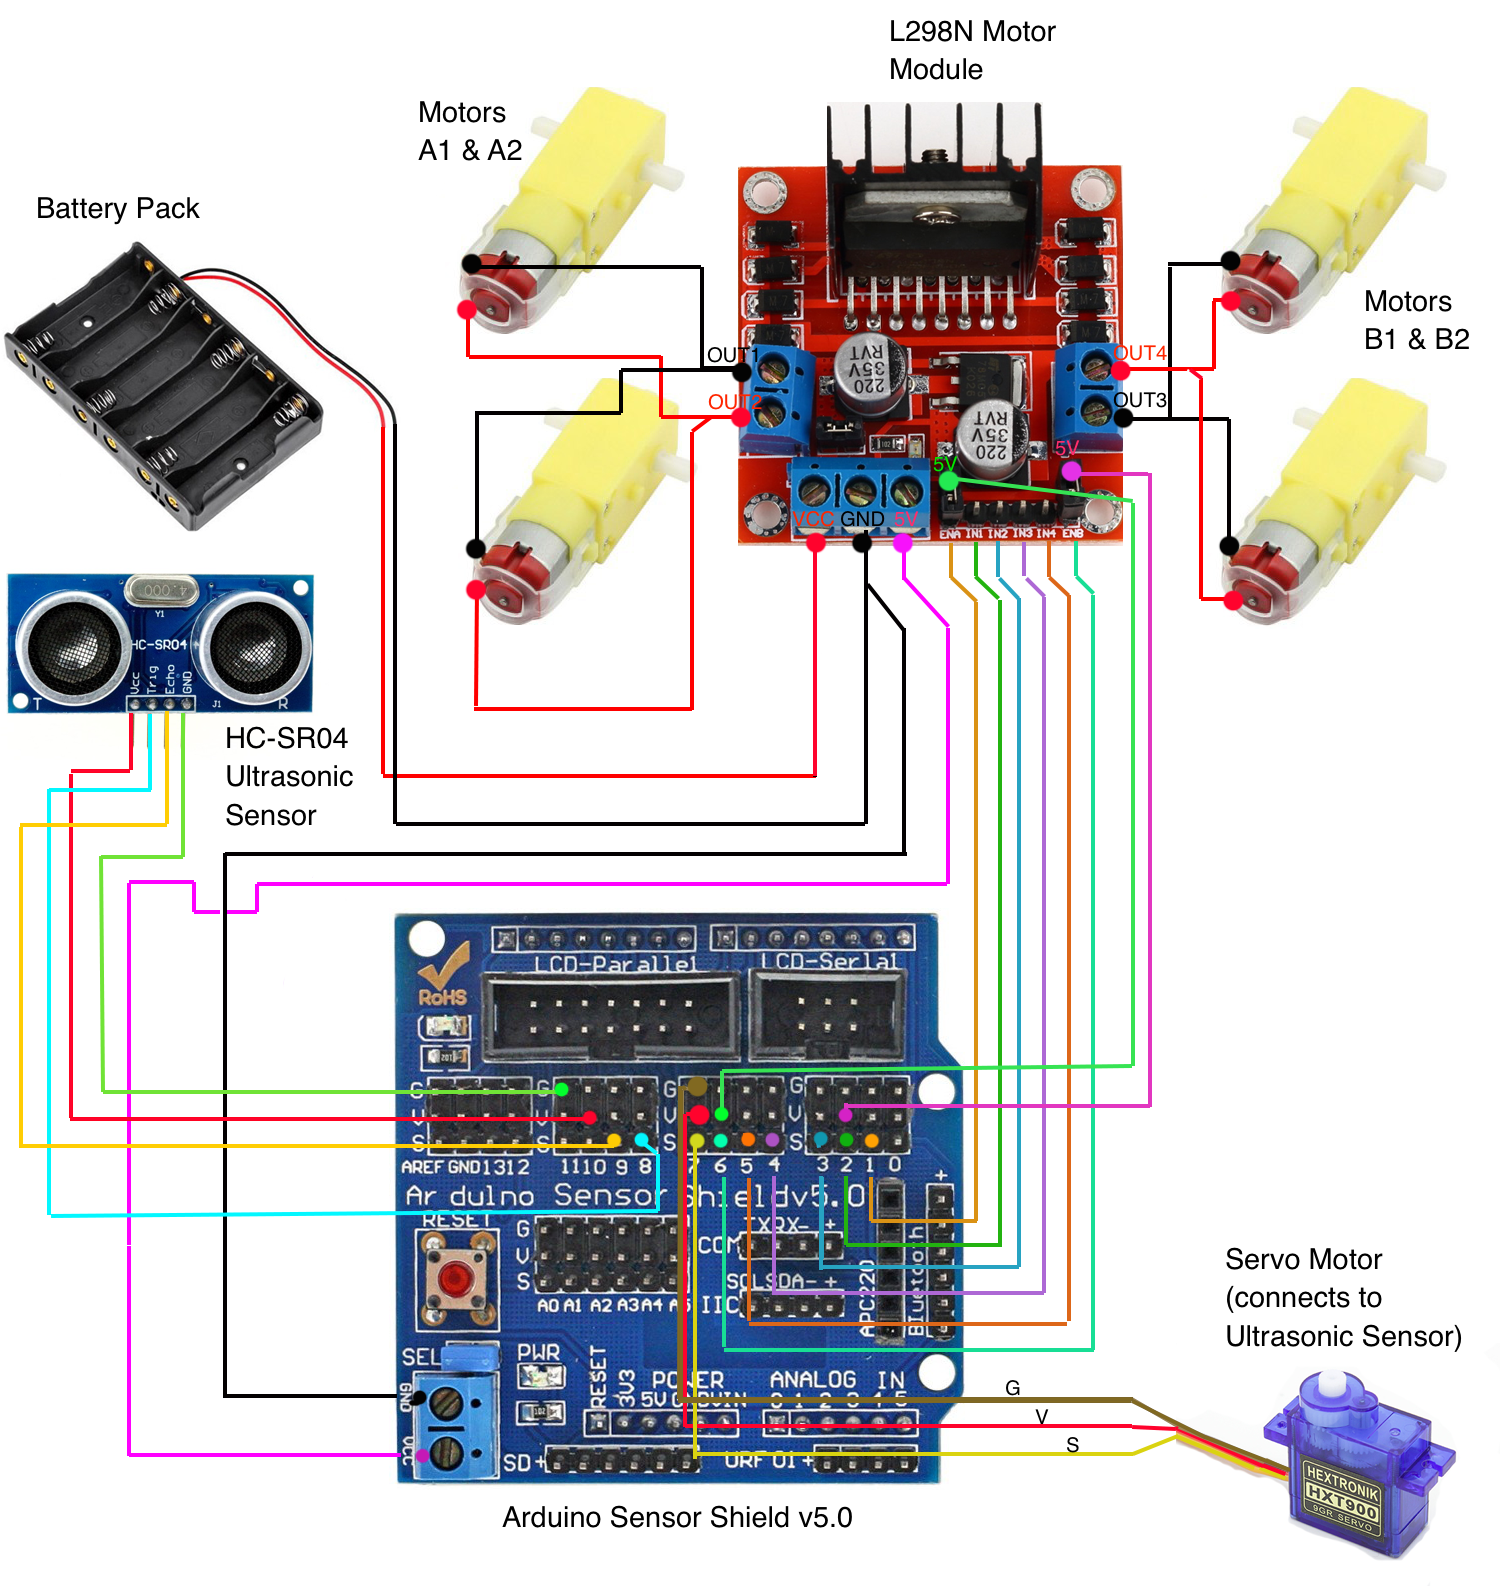 building a 4wd autonomous car with arduino